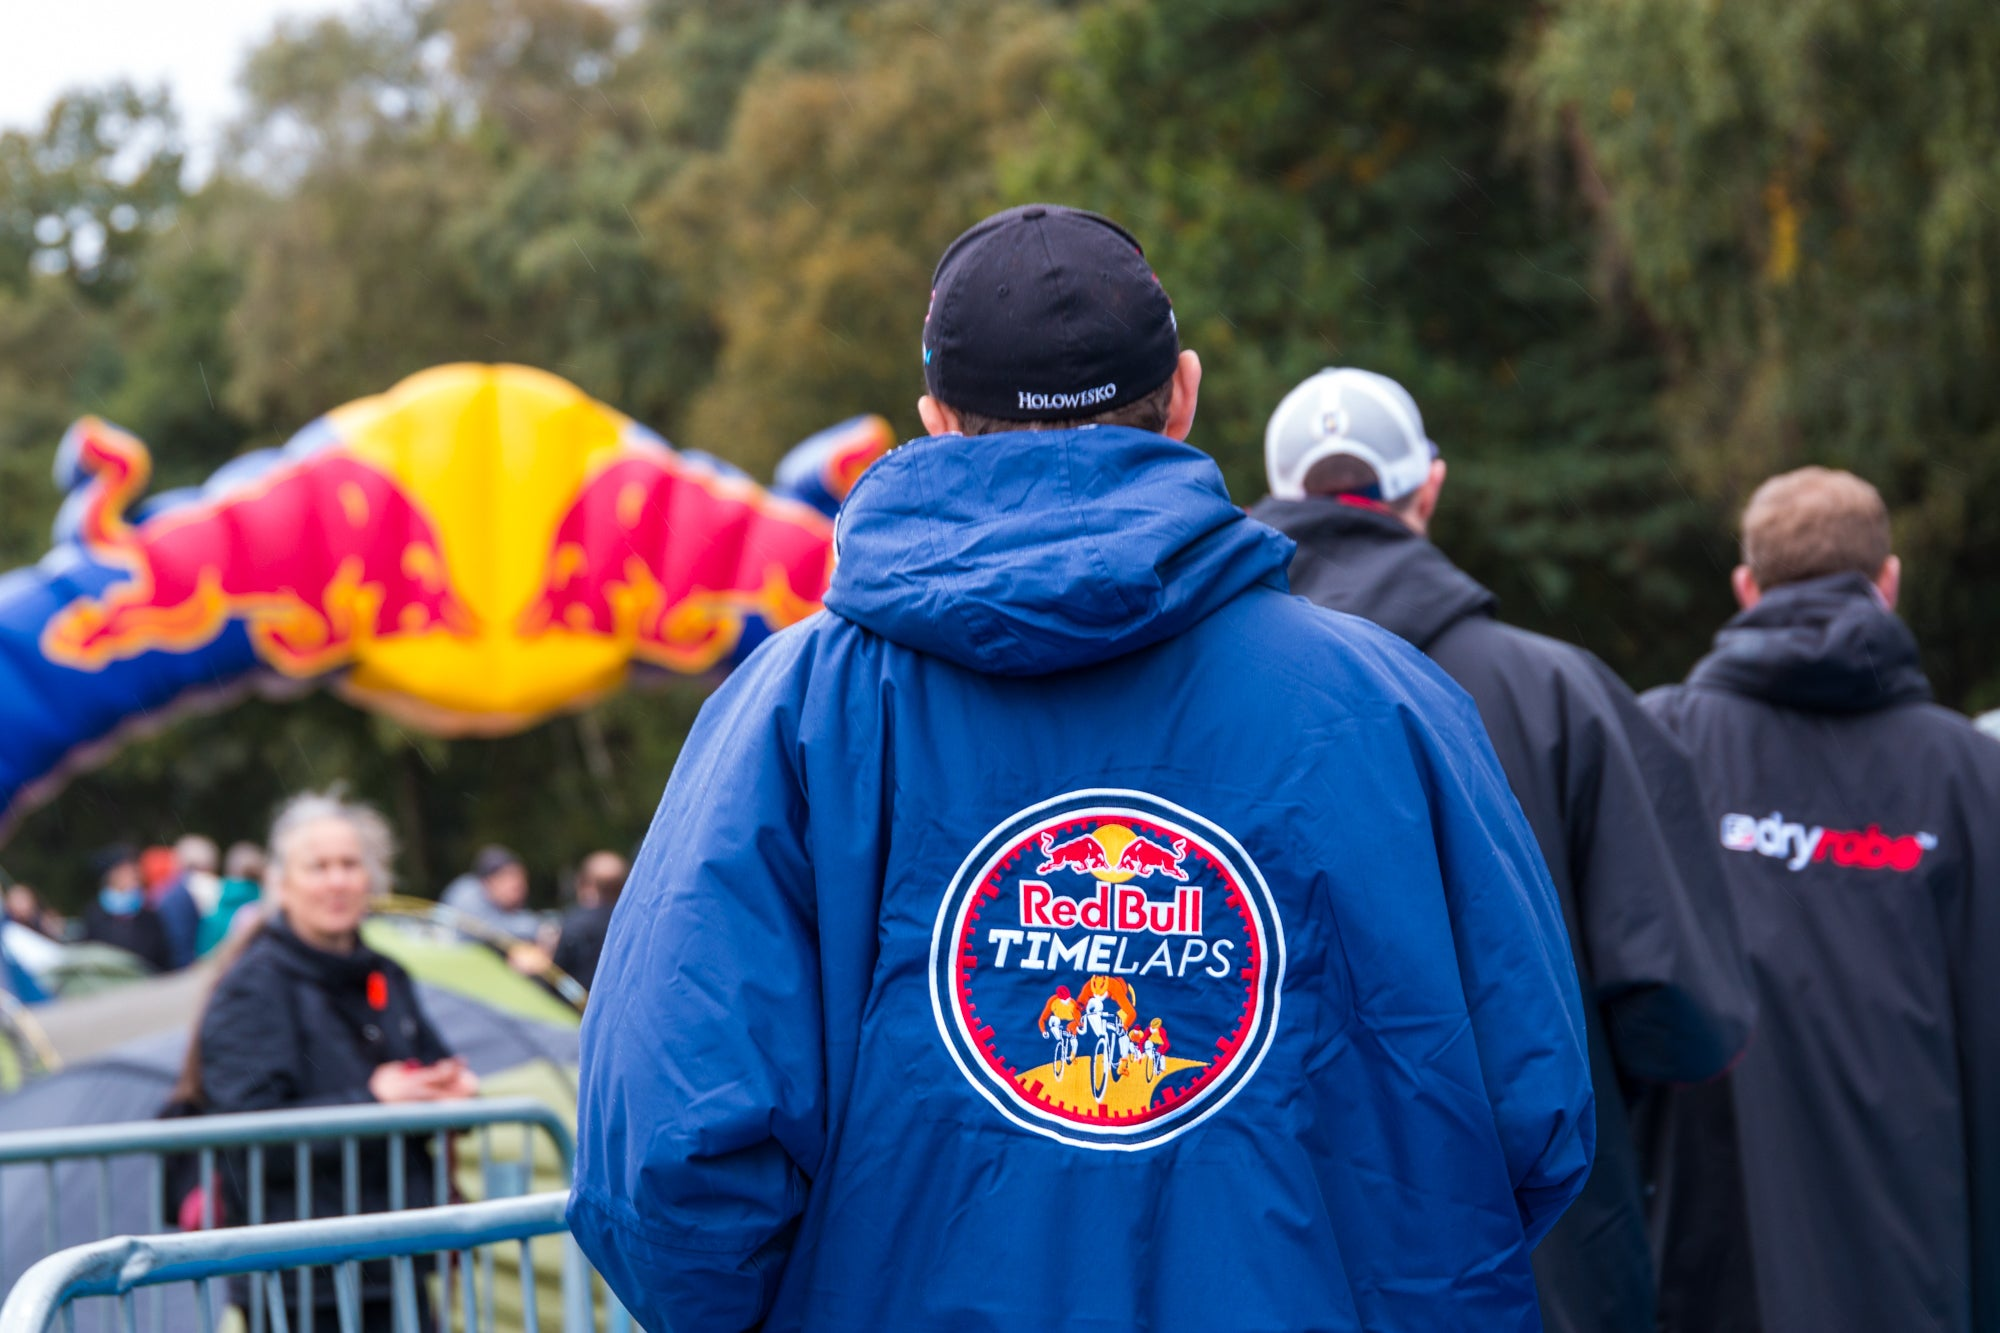 Red Bull Timelaps Limited Edition dryrobe